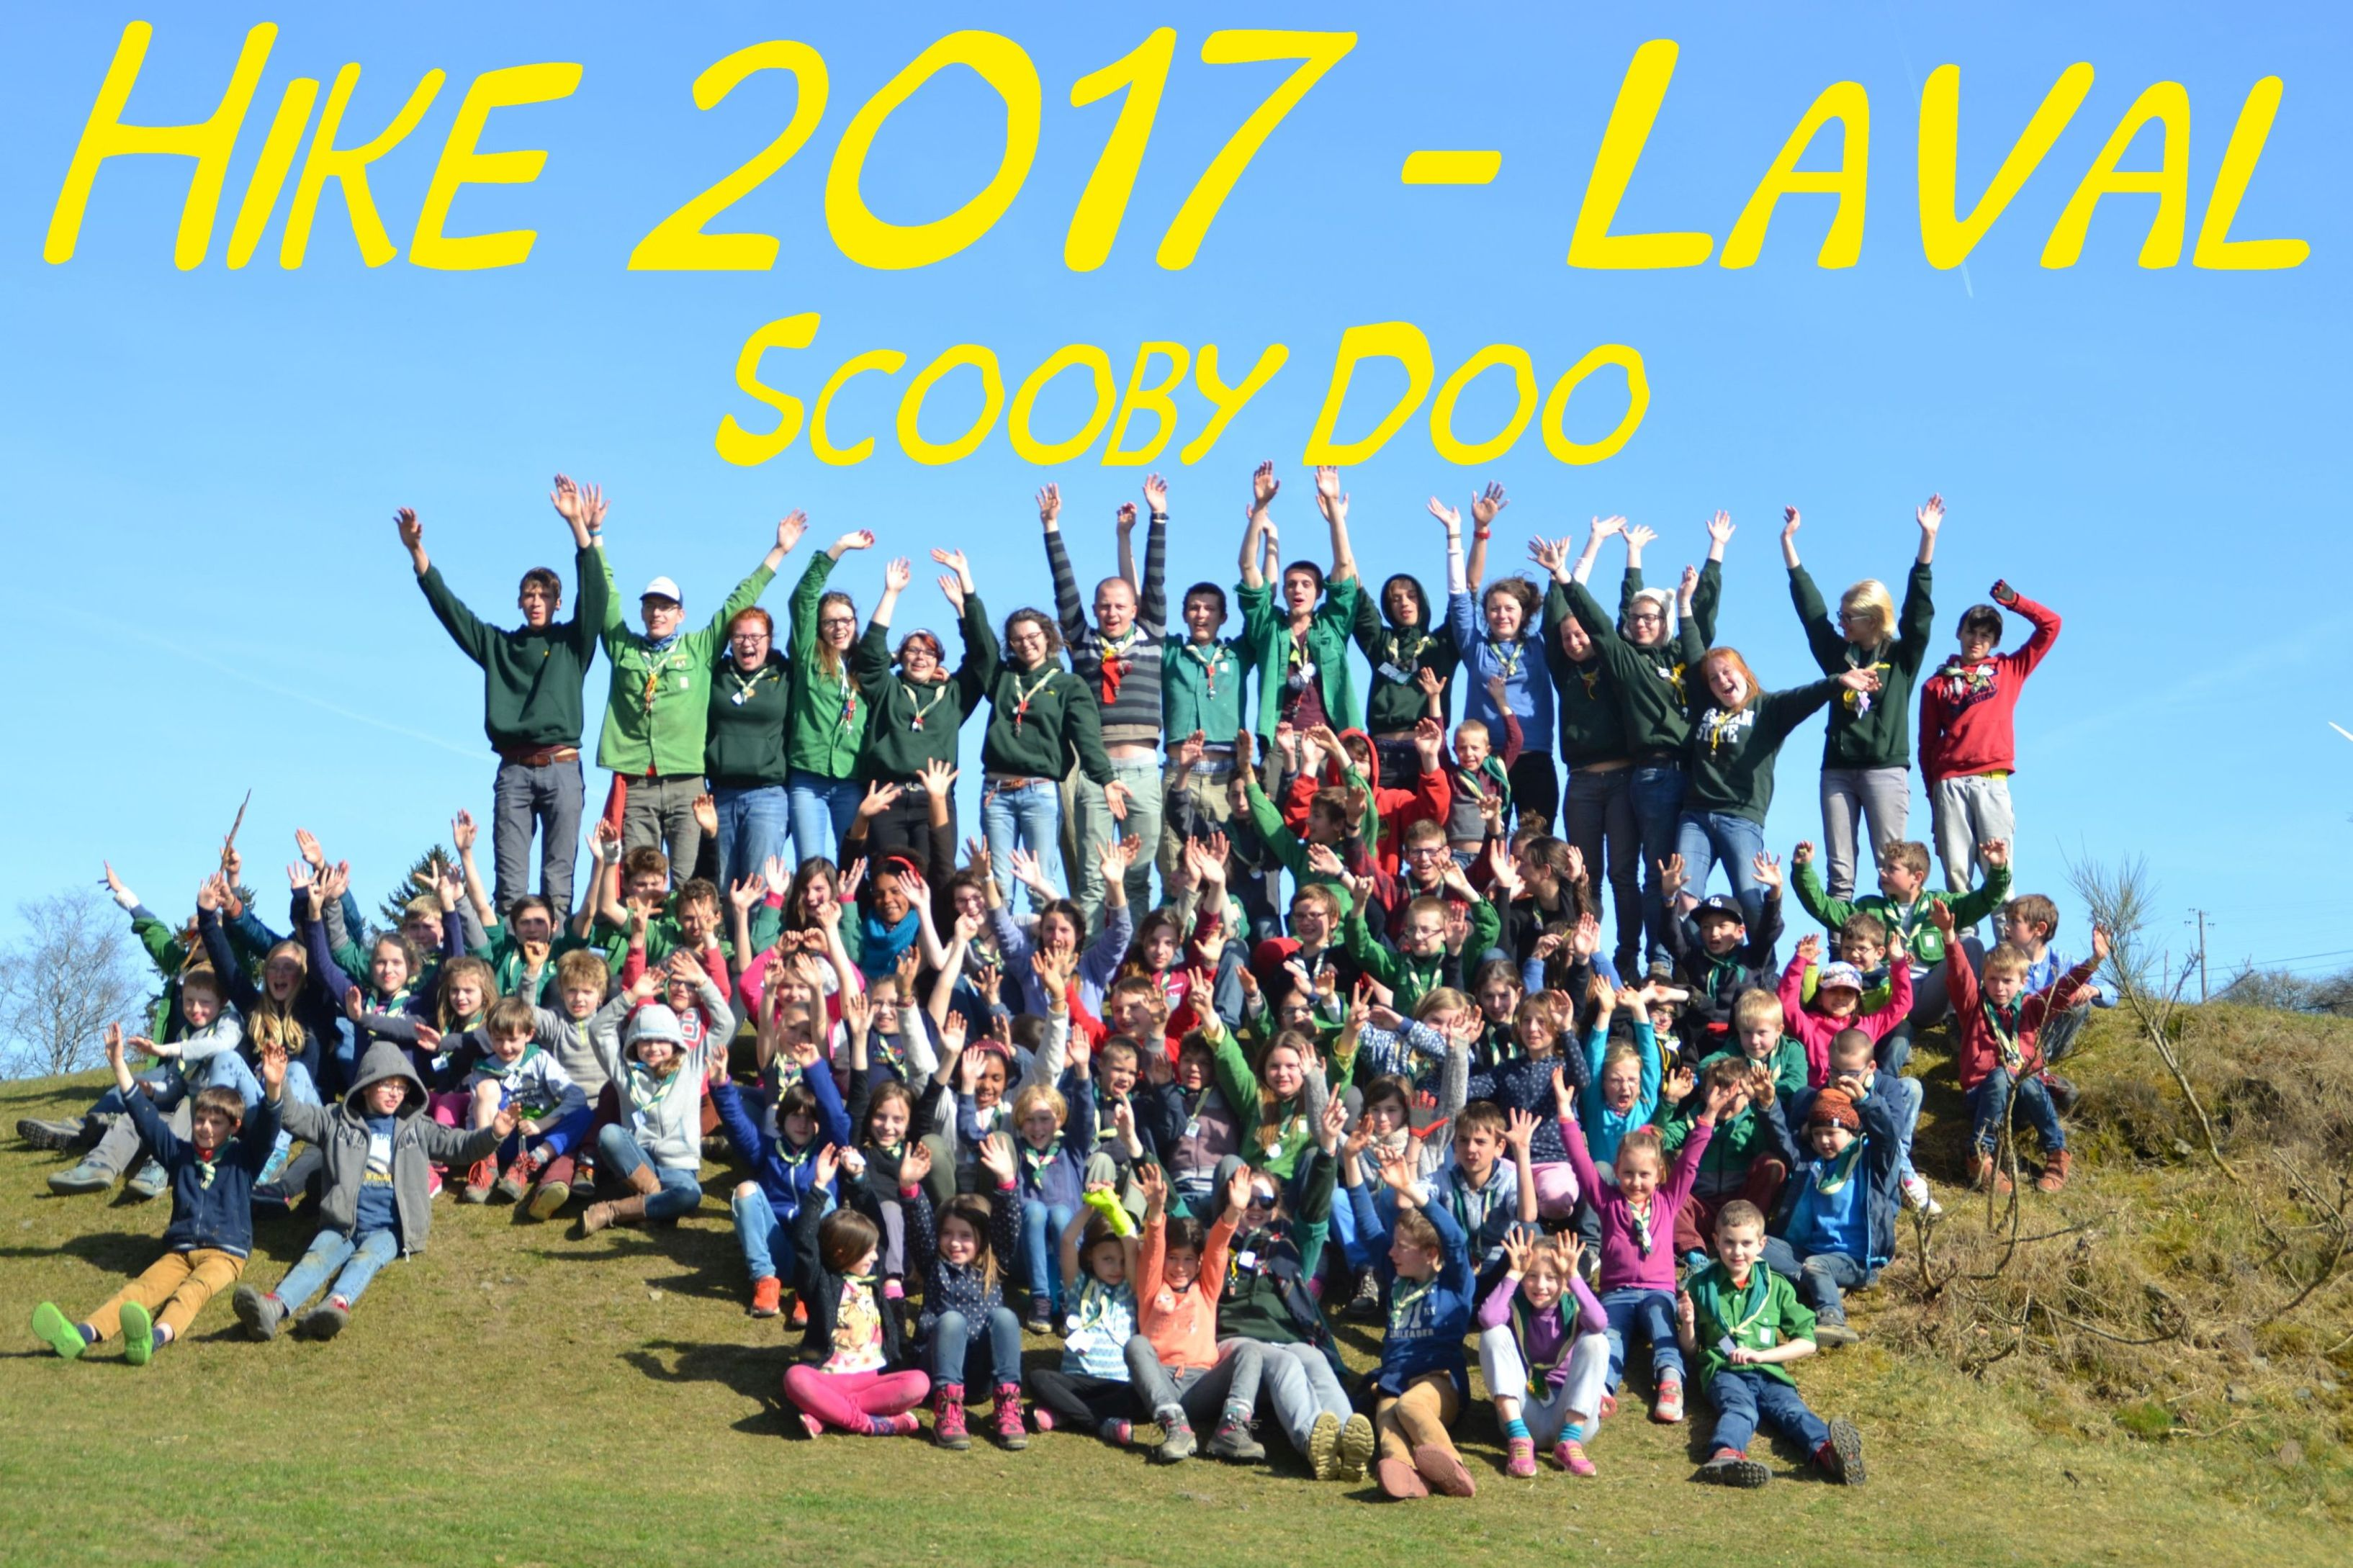 Hike 2017 - Laval - Scooby doo